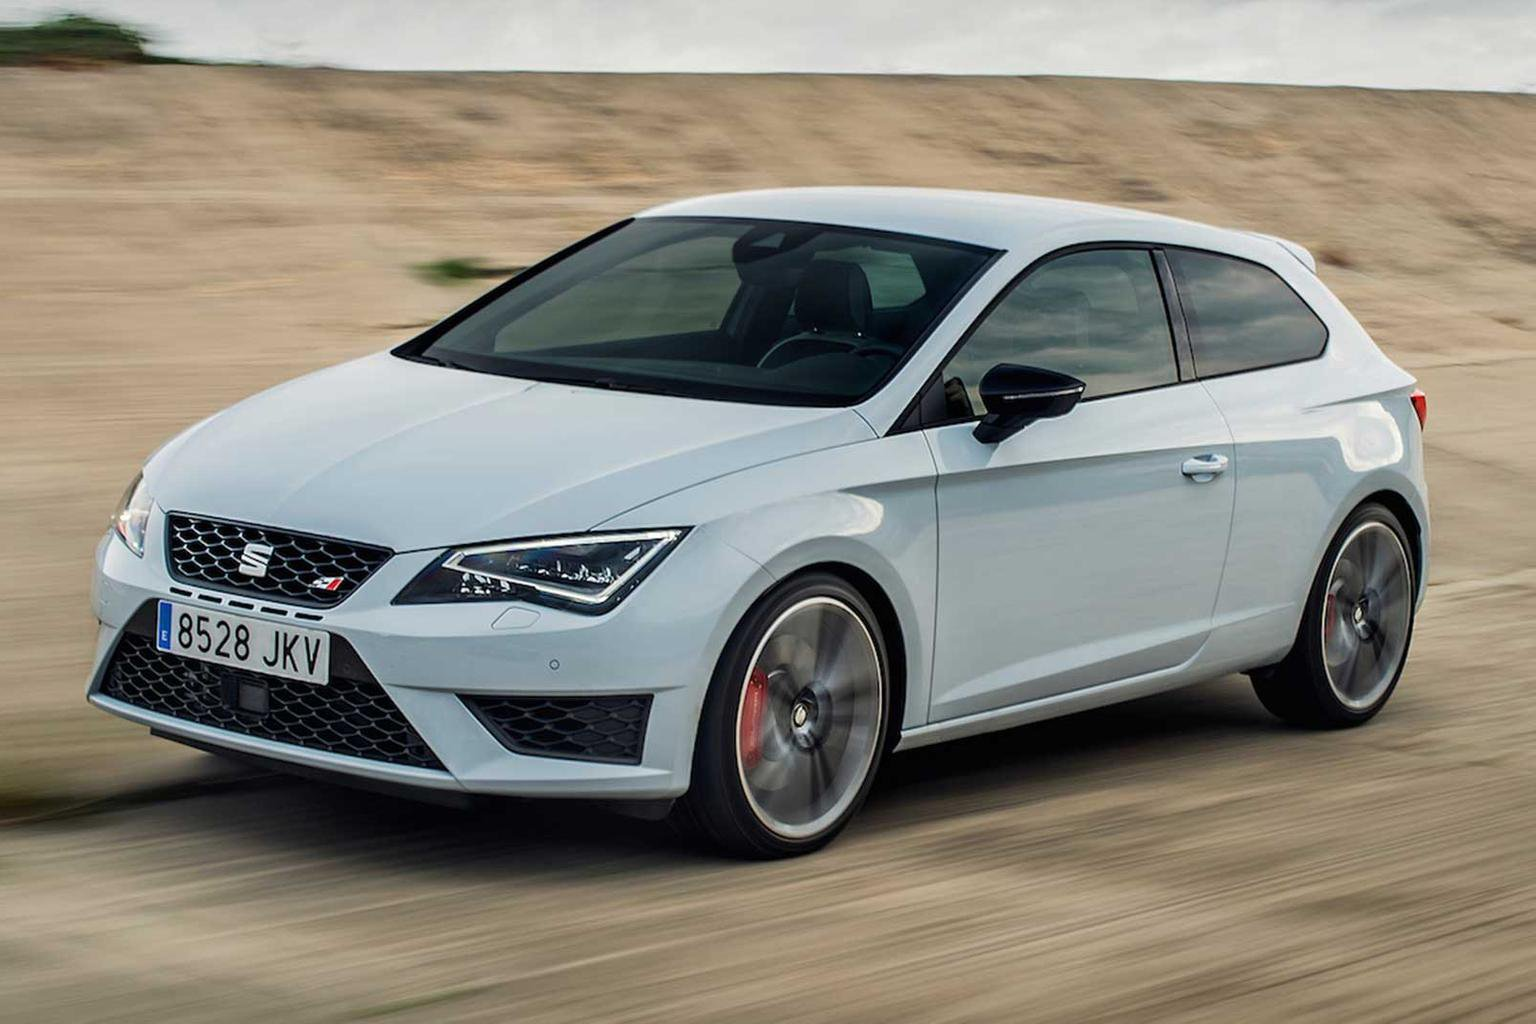 Deal of the Day: Seat Leon